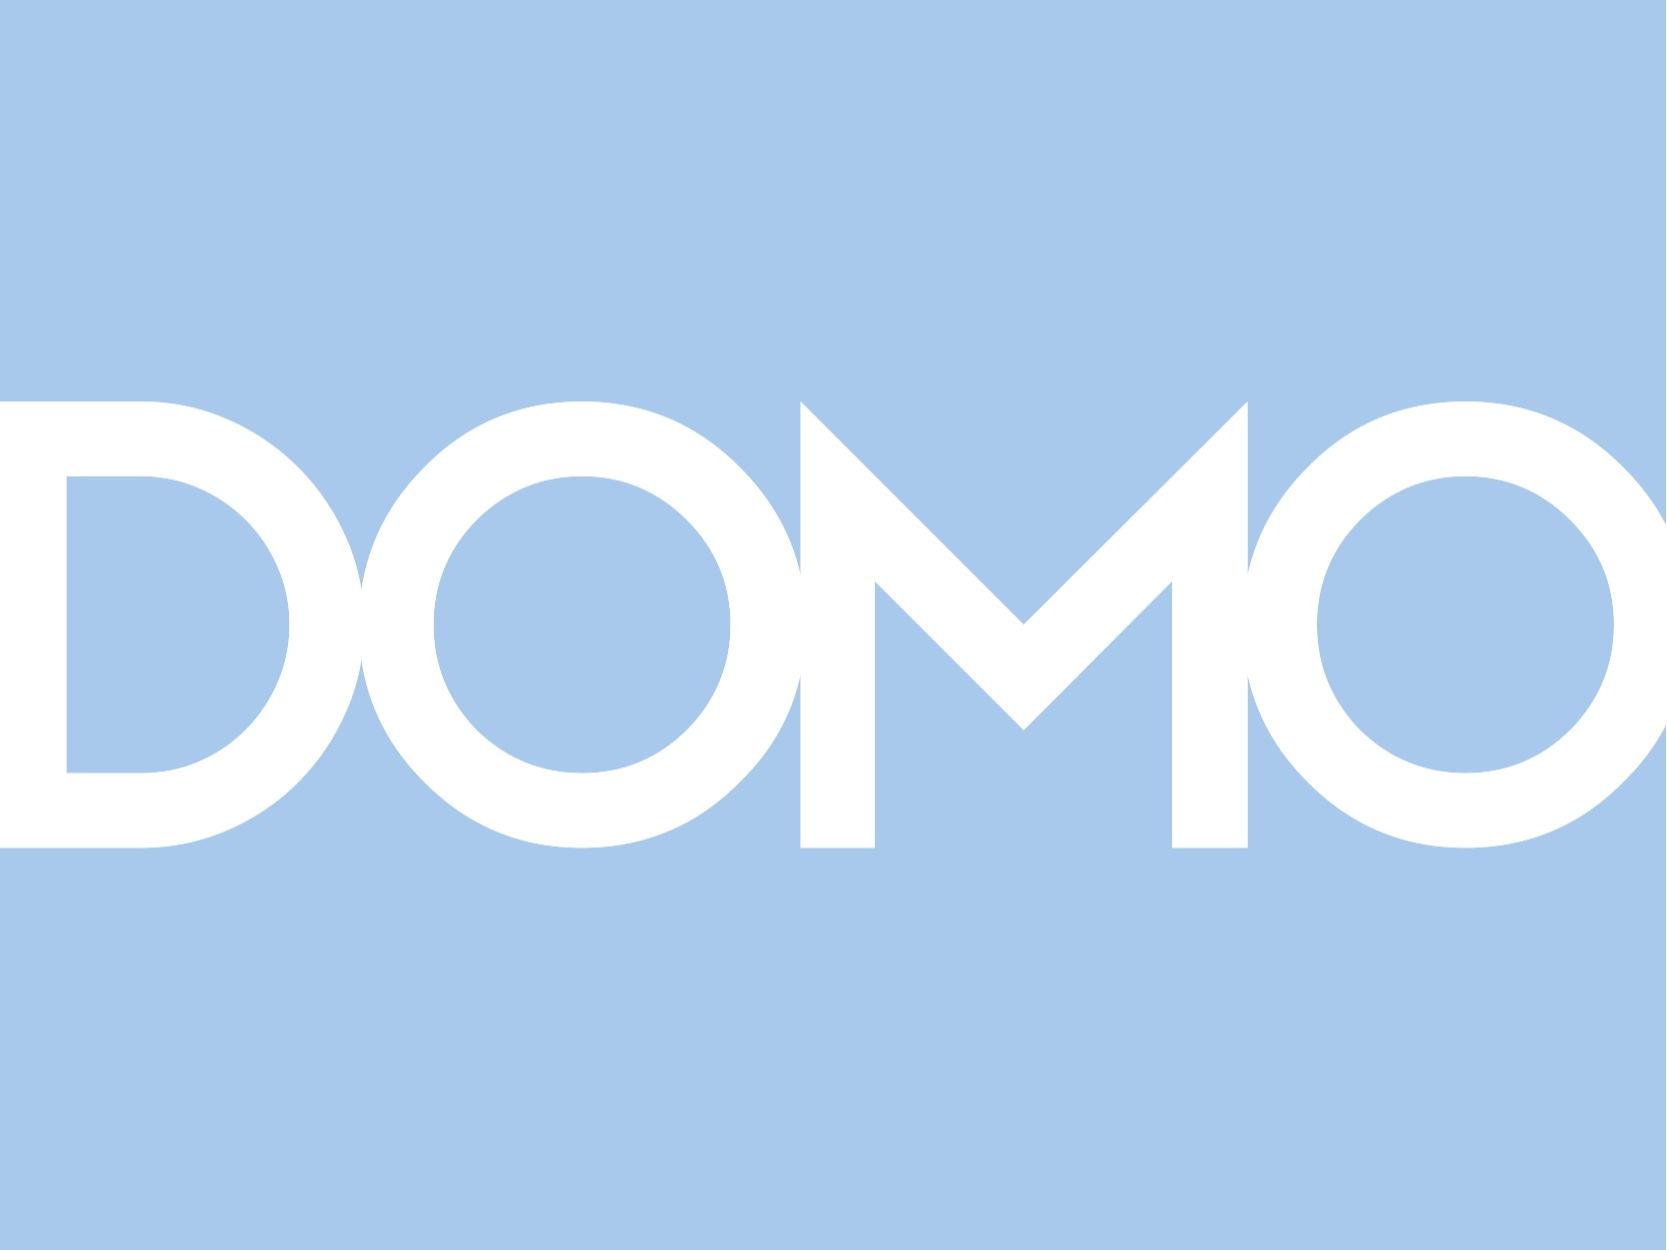 marketing analtyics tools- domo